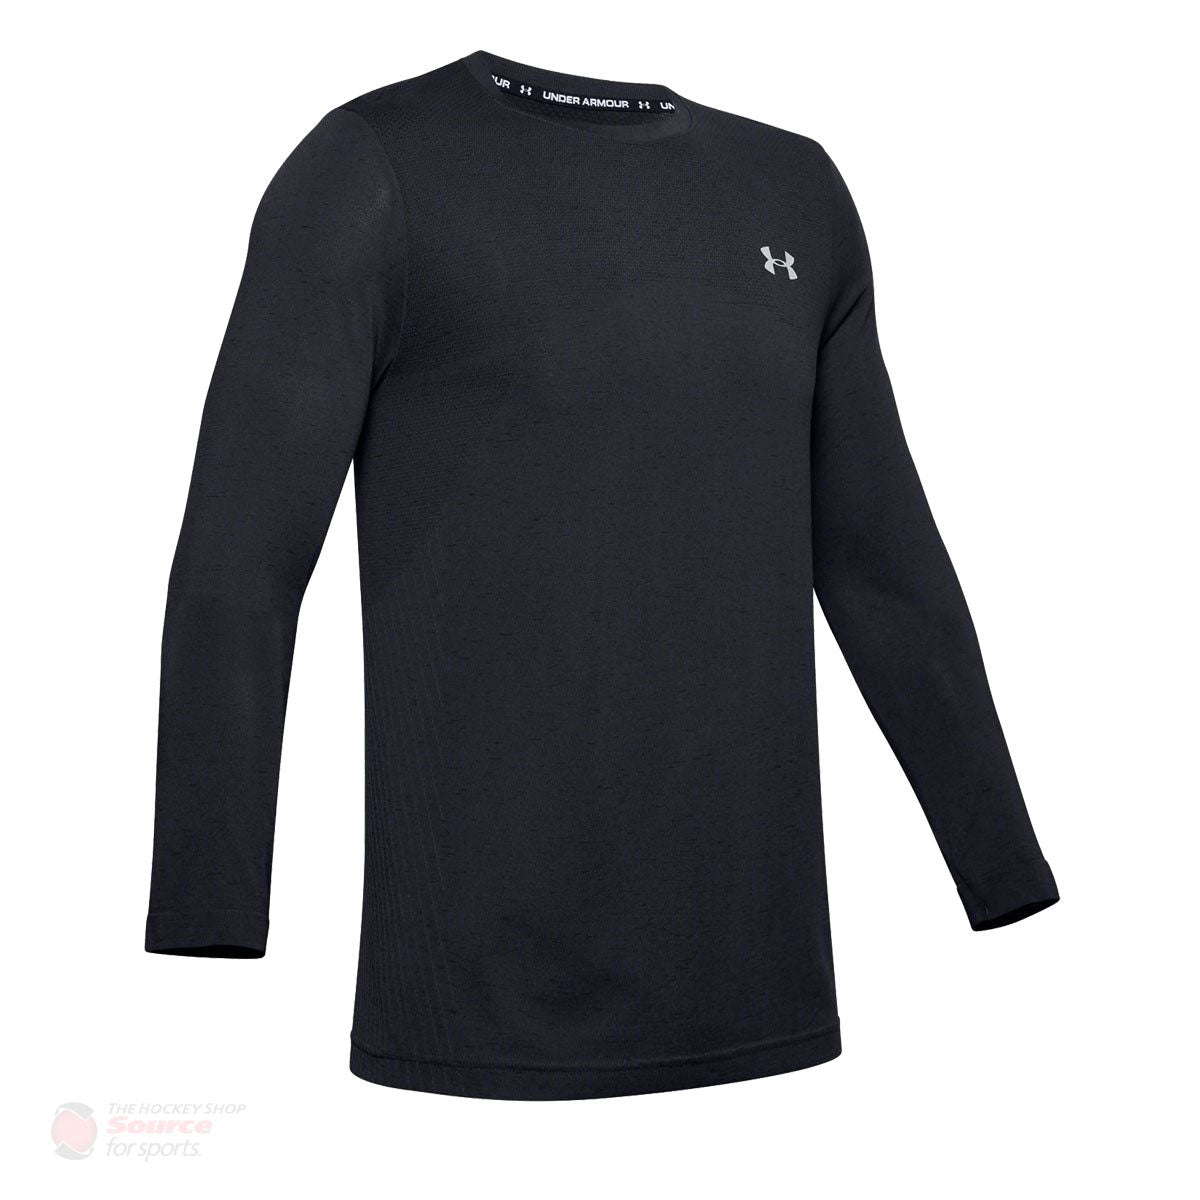 Under Armour Seamless Longsleeve Mens Shirt